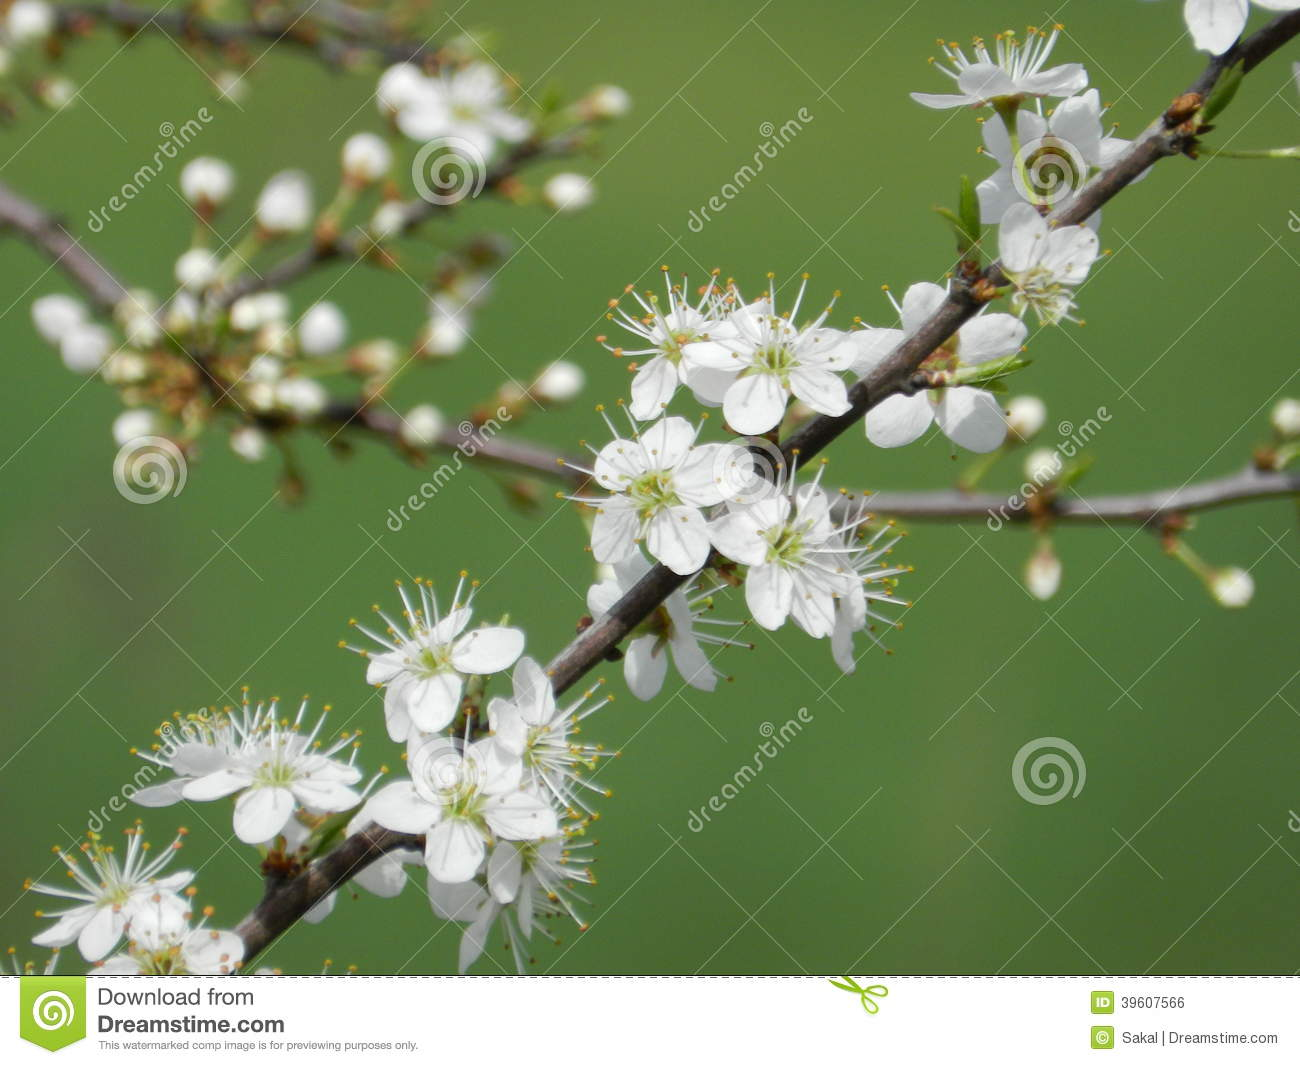 Blooming fruit trees in spring